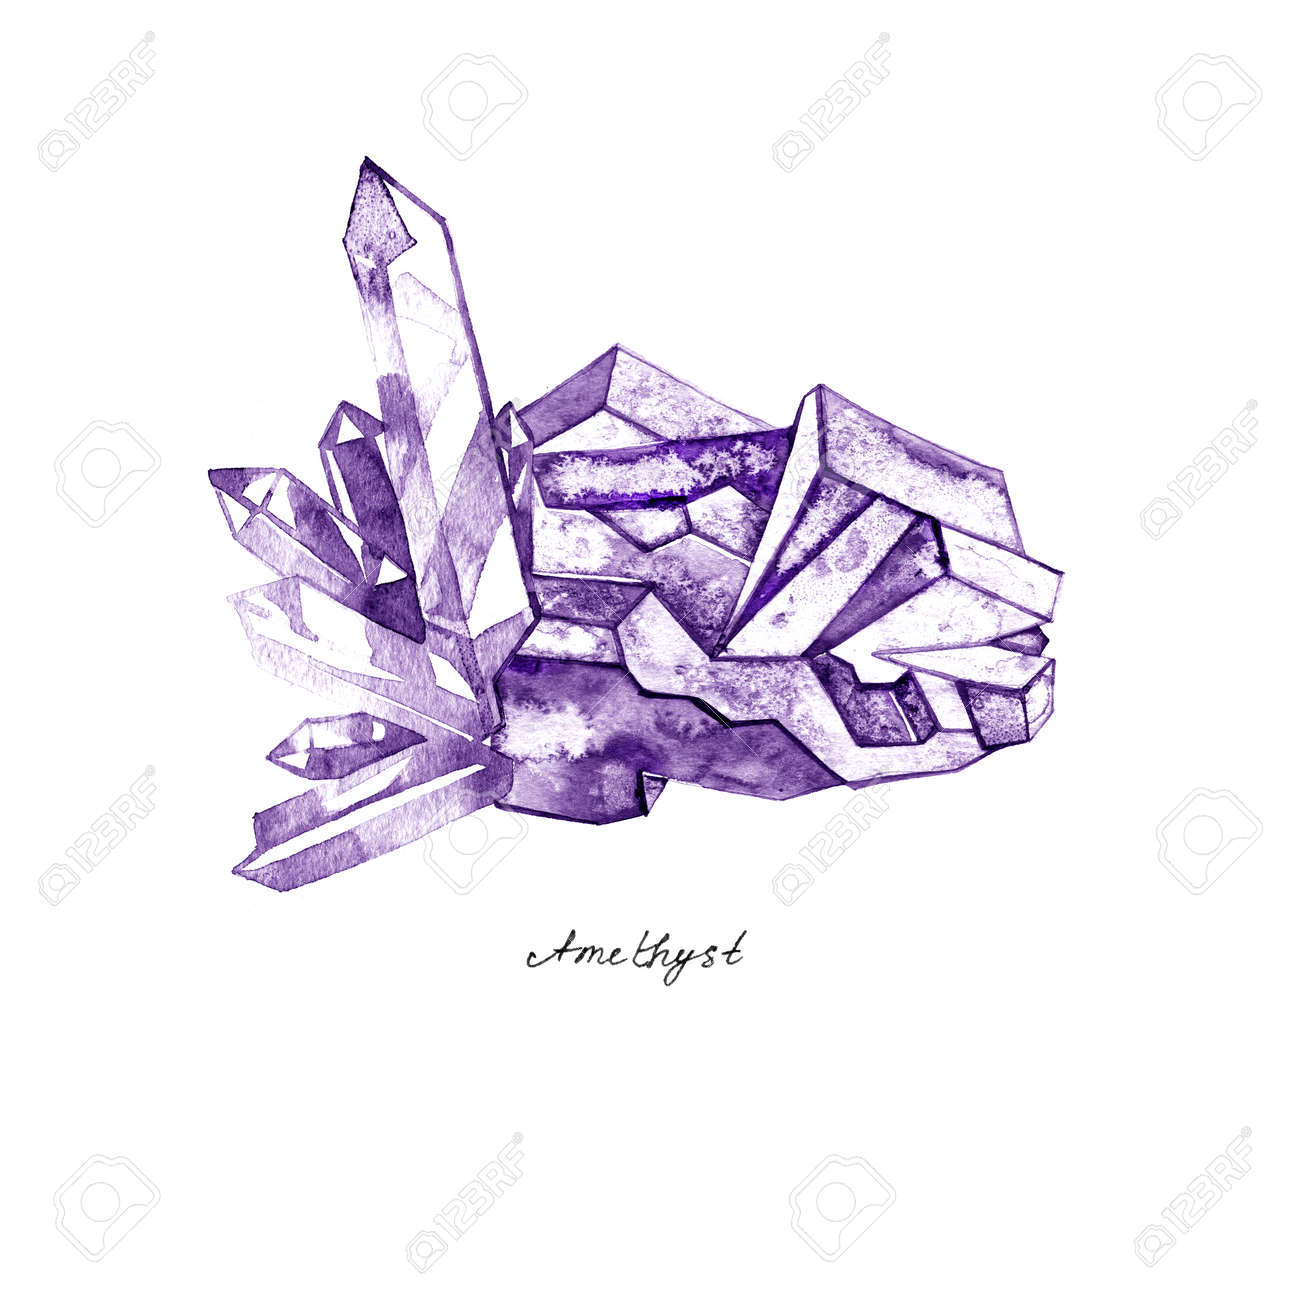 Watercolor purple crystal amethyst cluster hand drawn painting illustration isolated on white background tanzanit gem stones for design fashion advertising, geological , scrapbook, jewelry store - 76190421